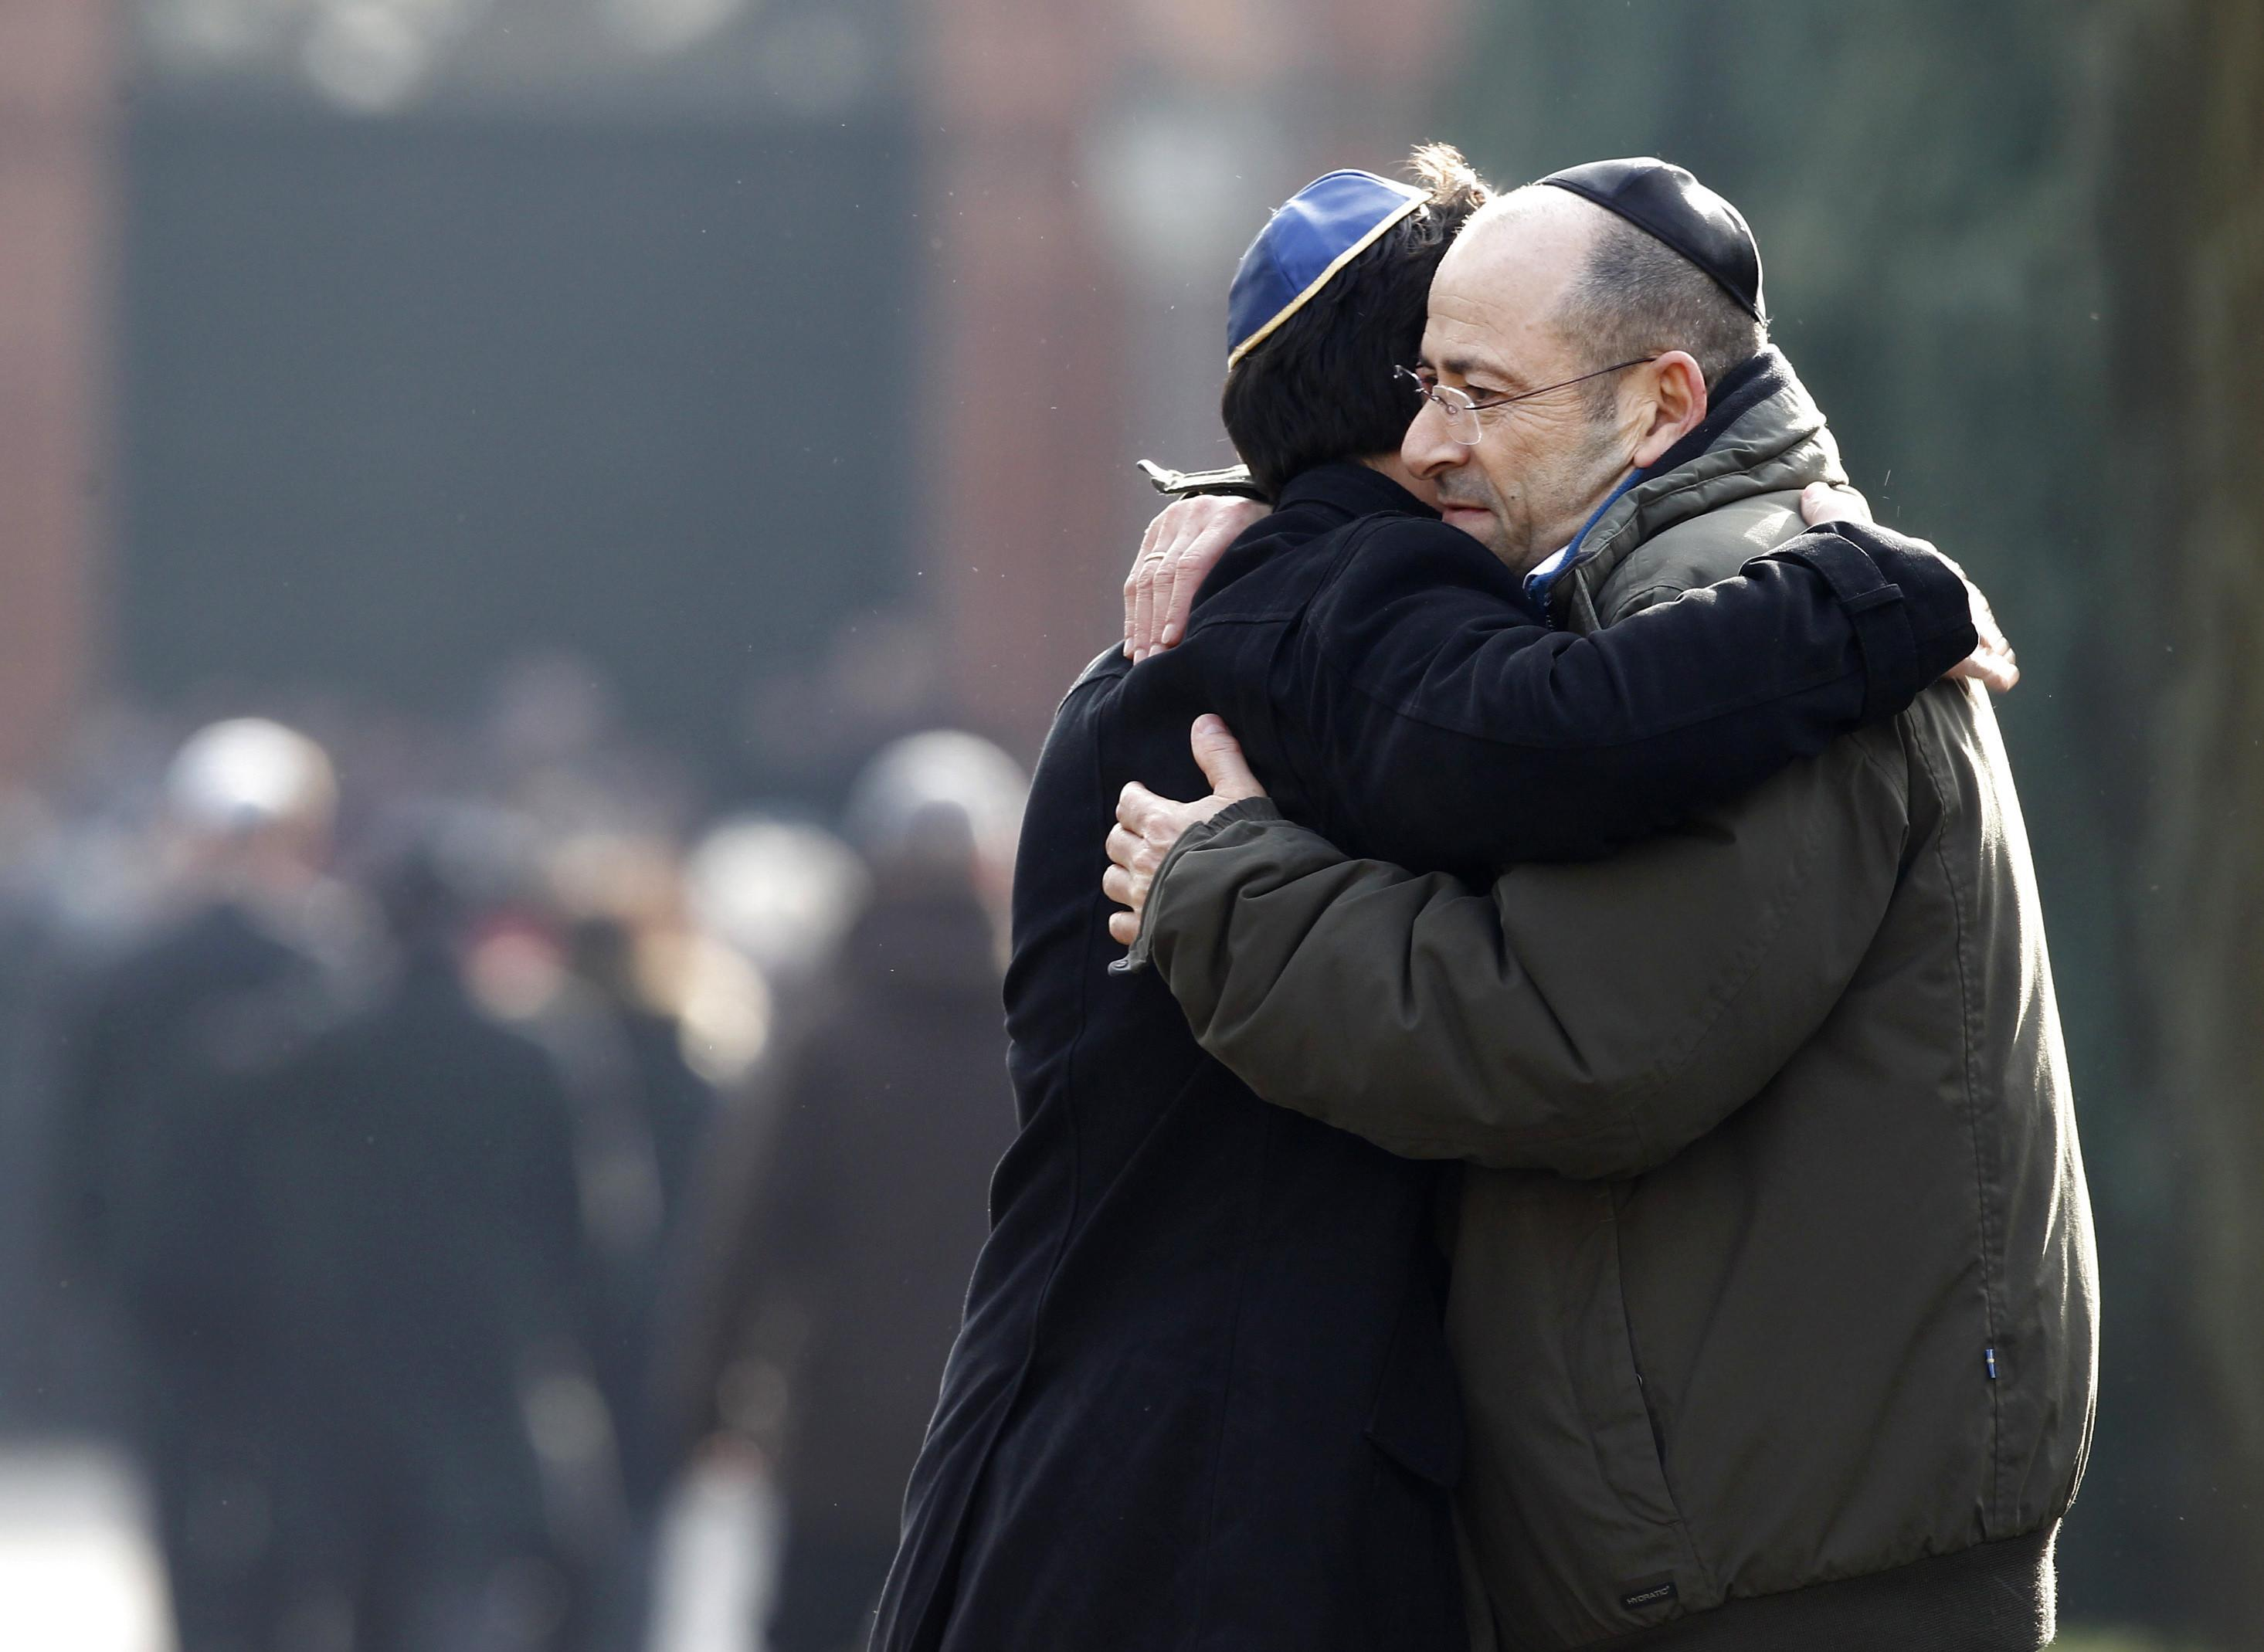 Two men wearing kippahs hug each other prior to the burial of a Jewish victim of the attacks, at the Vestre Kirkegaard cemetery in Copenhagen, Denmark, on February 18, 2015 (AFP Photo/Bax Lindhardt)